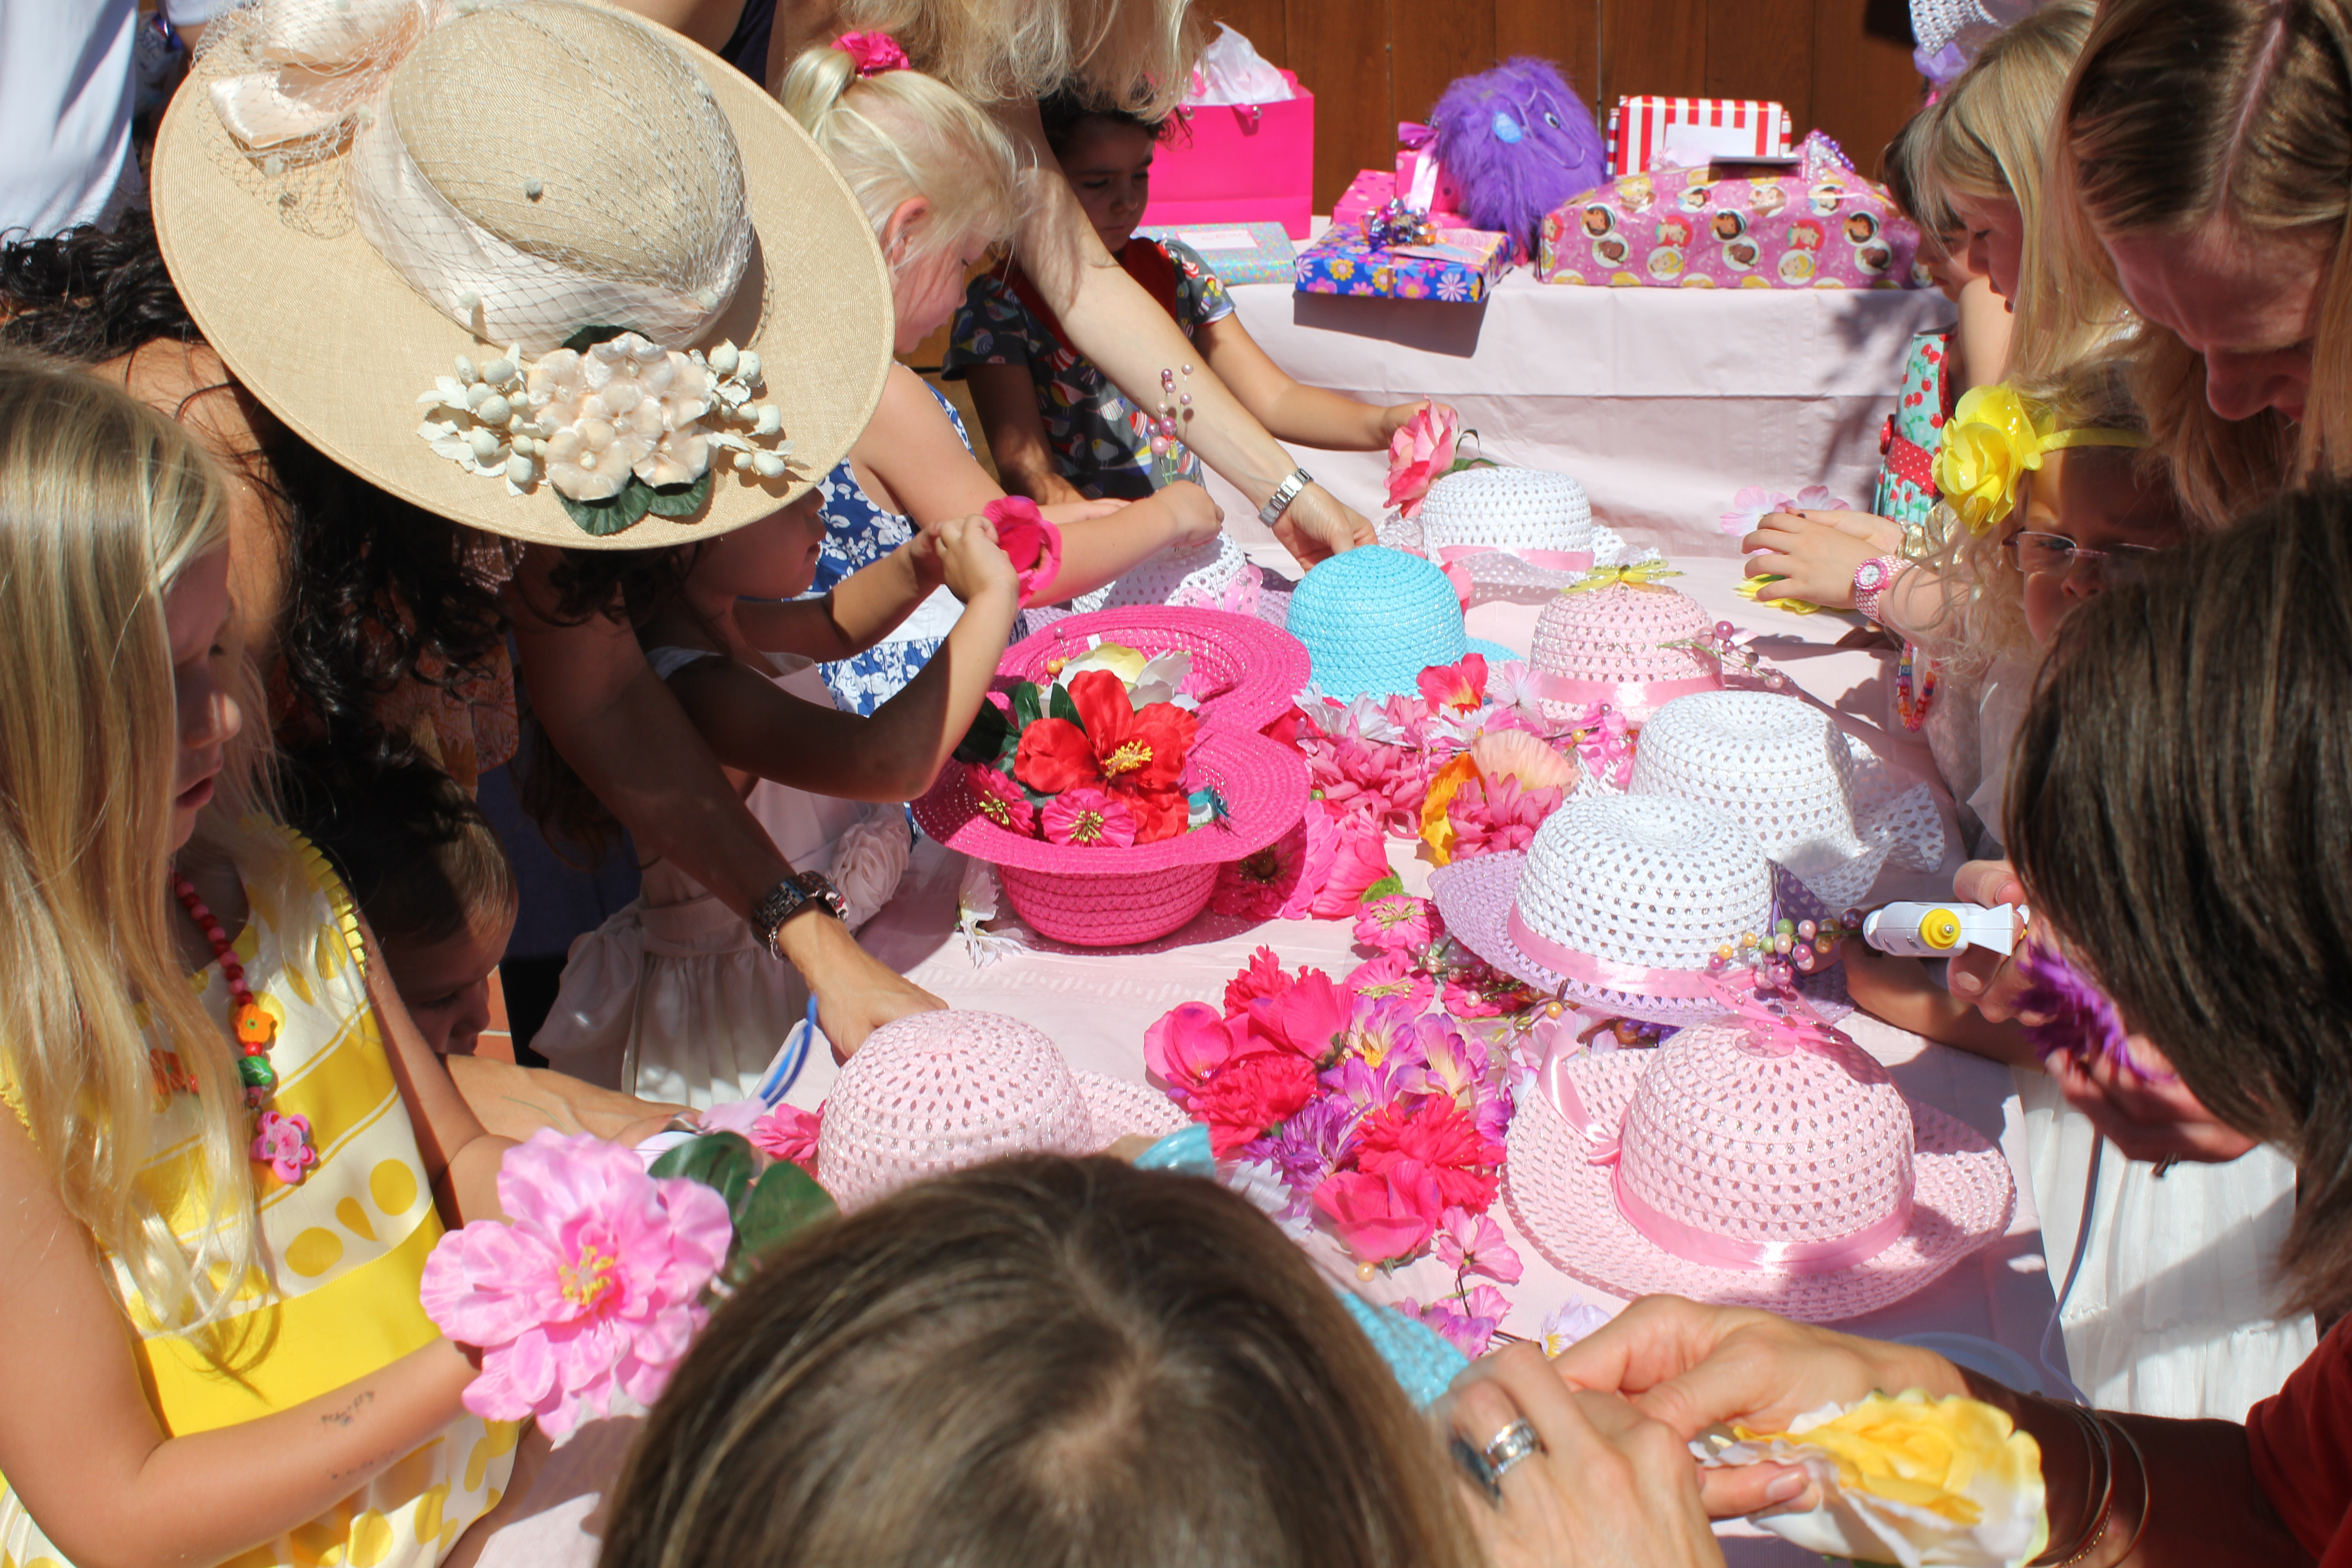 Decorating the fancy girl tea party hats 8a956875f82e